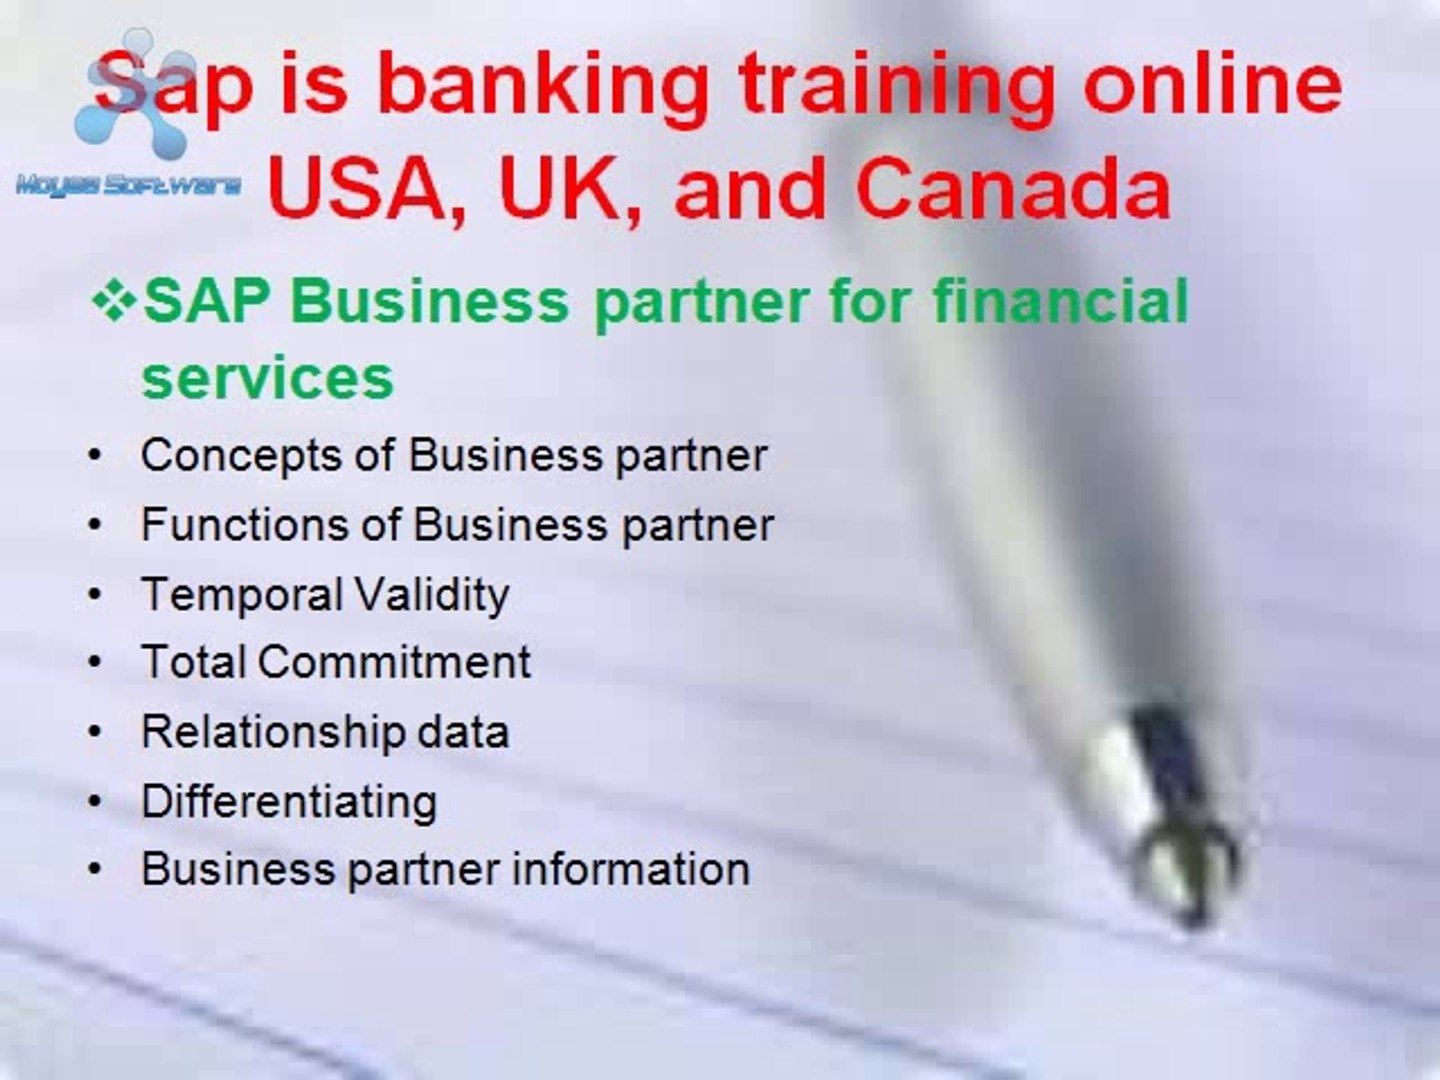 Sap is banking training online USA, UK, and Canada